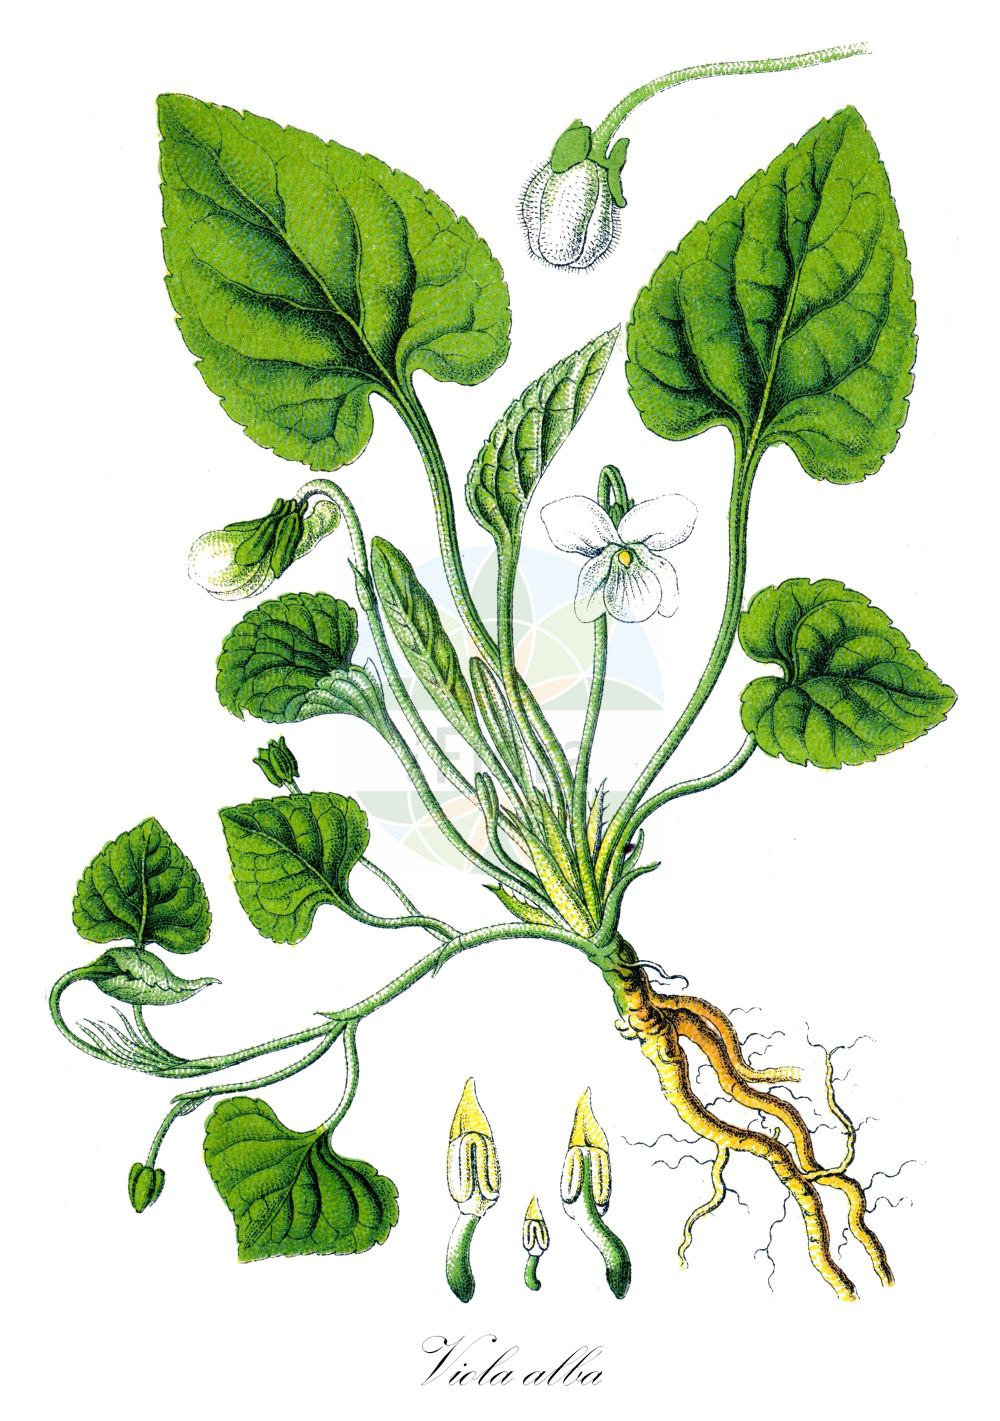 Historische Abbildung von Viola alba (Weisses Veilchen - White Violet). Das Bild zeigt Blatt, Bluete, Frucht und Same. ---- Historical Drawing of Viola alba (Weisses Veilchen - White Violet).The image is showing leaf, flower, fruit and seed. (Viola alba,Weisses Veilchen,White Violet,Viola besseri,Viola martii subsp. alba,Gewoehnliches ,Viola,Veilchen,violet,Violaceae,Veilchengewaechse,Violet family,Blatt,Bluete,Frucht,Same,leaf,flower,fruit,seed,Sturm (1796f))